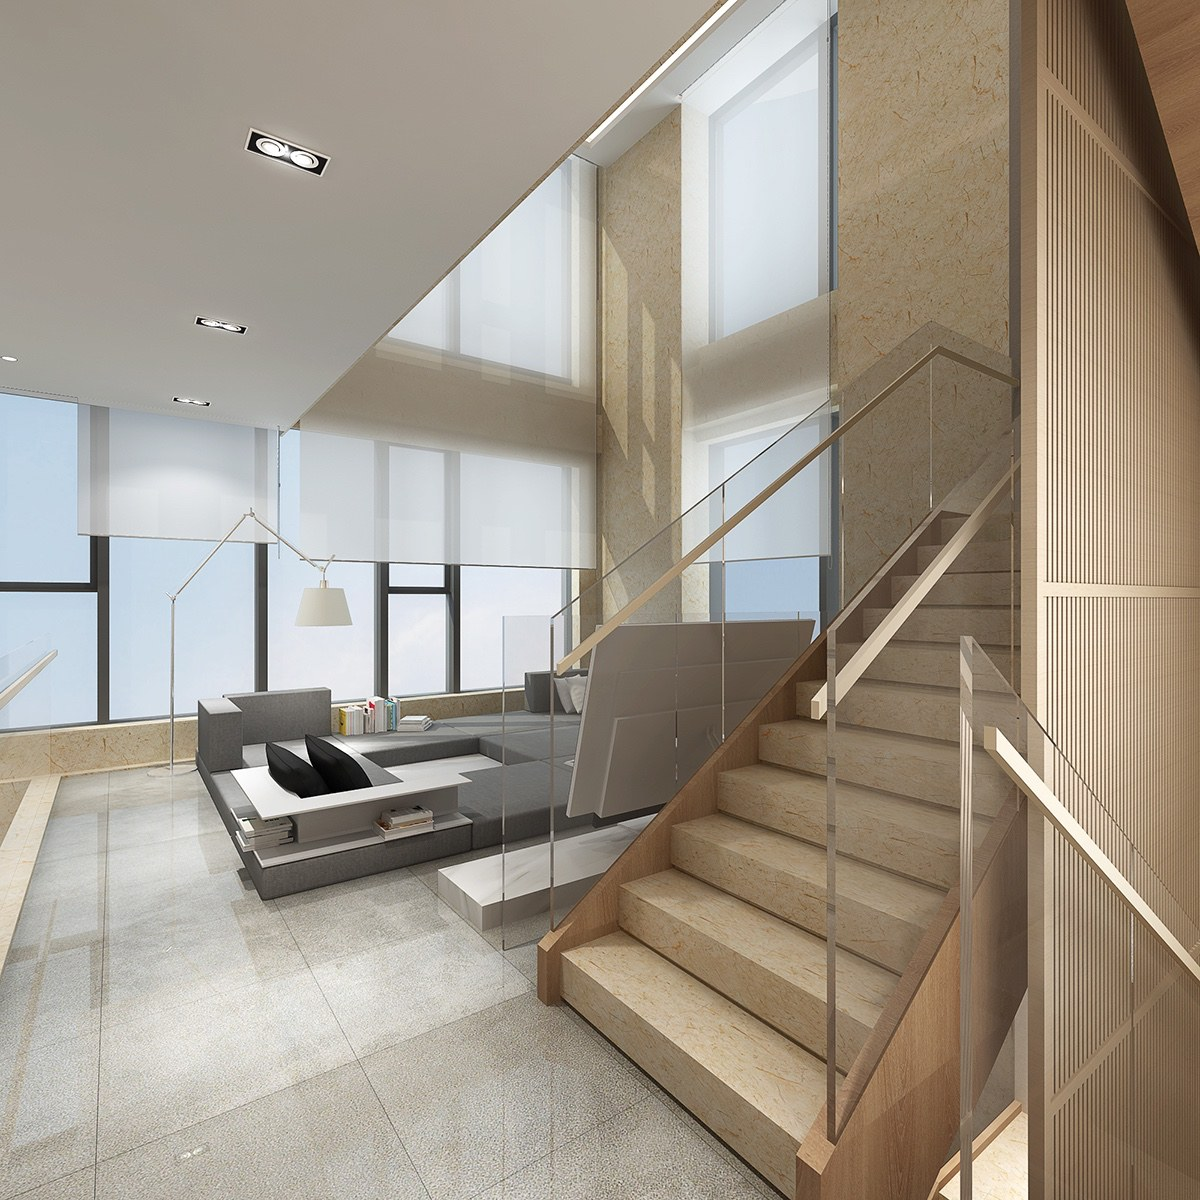 Glass Staircase - 2 luxury homes with beige focused interior design